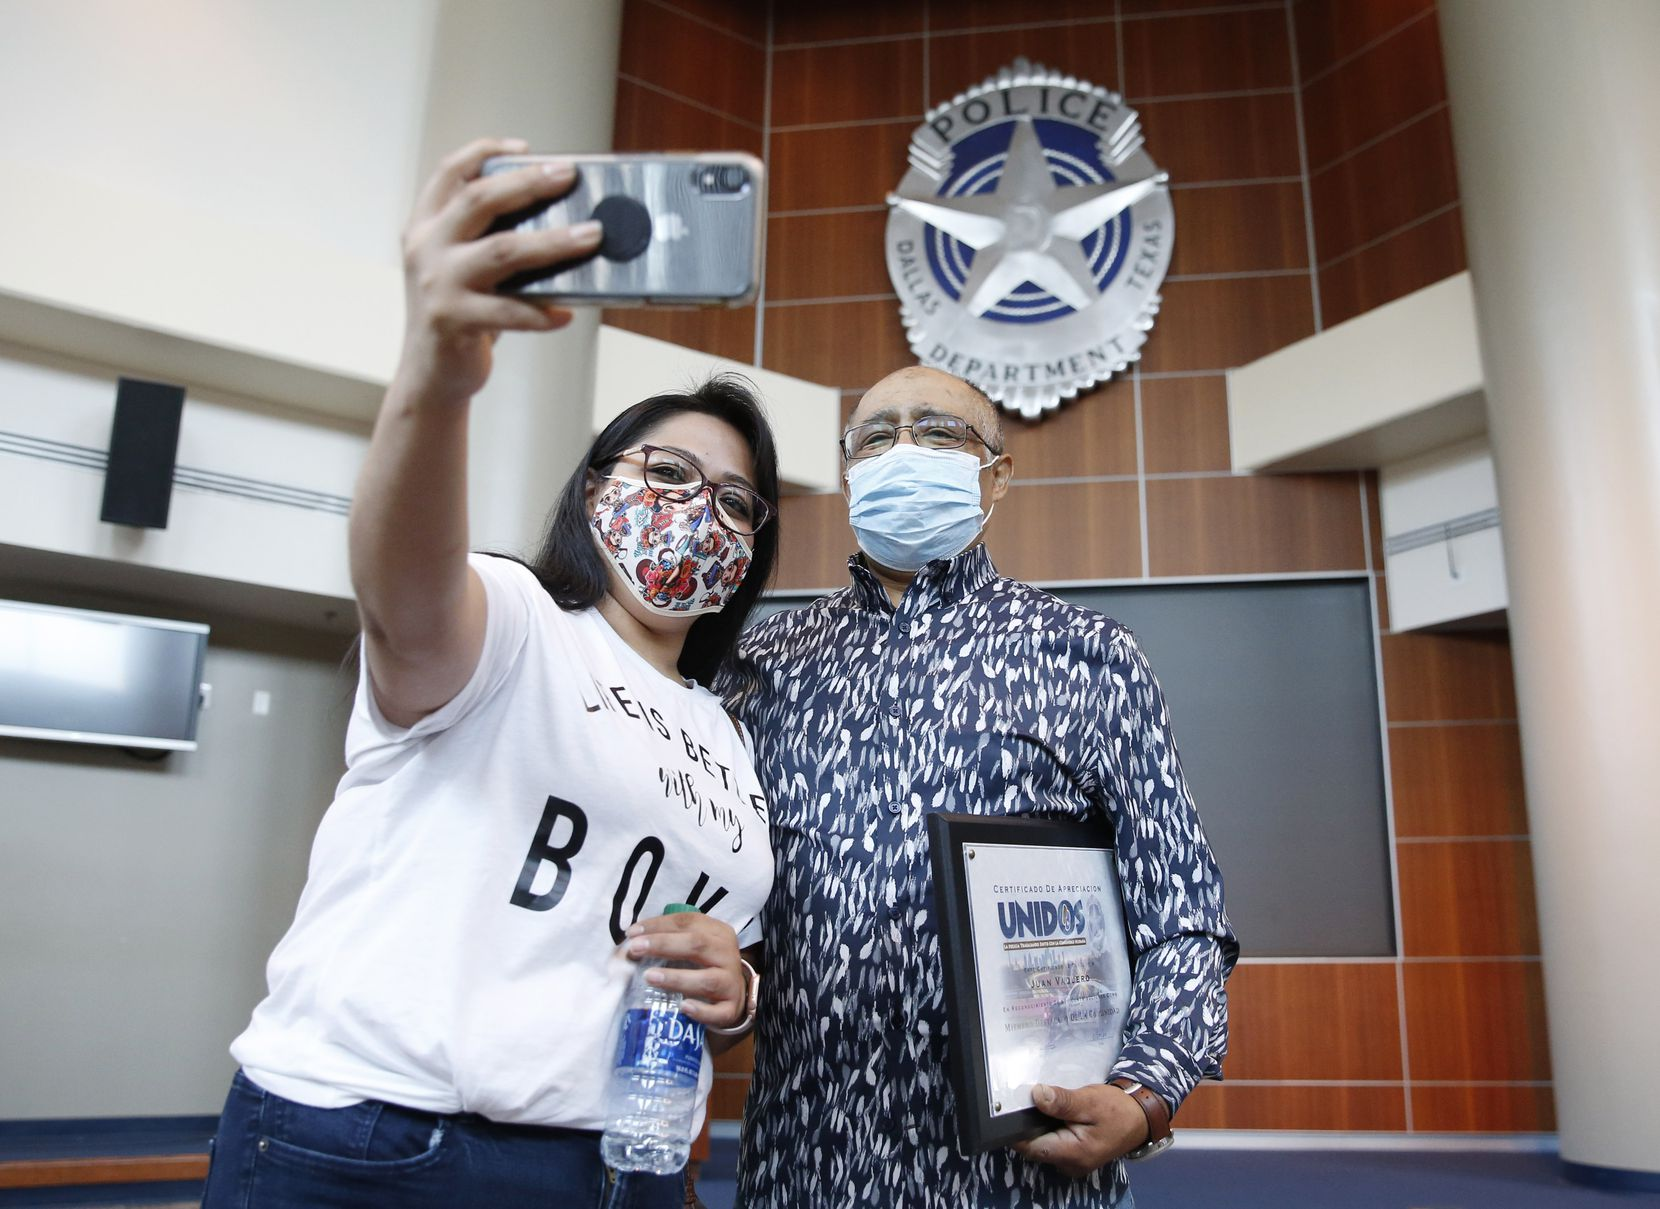 Norma Rocha takes a photo with her father, Juan Vaquero, who is holding a certificate he received from the Dallas Police Department during a ceremony at headquarters in May. Police thanked Vaquero for making the call that led to his 6-year-old neighbor's rescue.